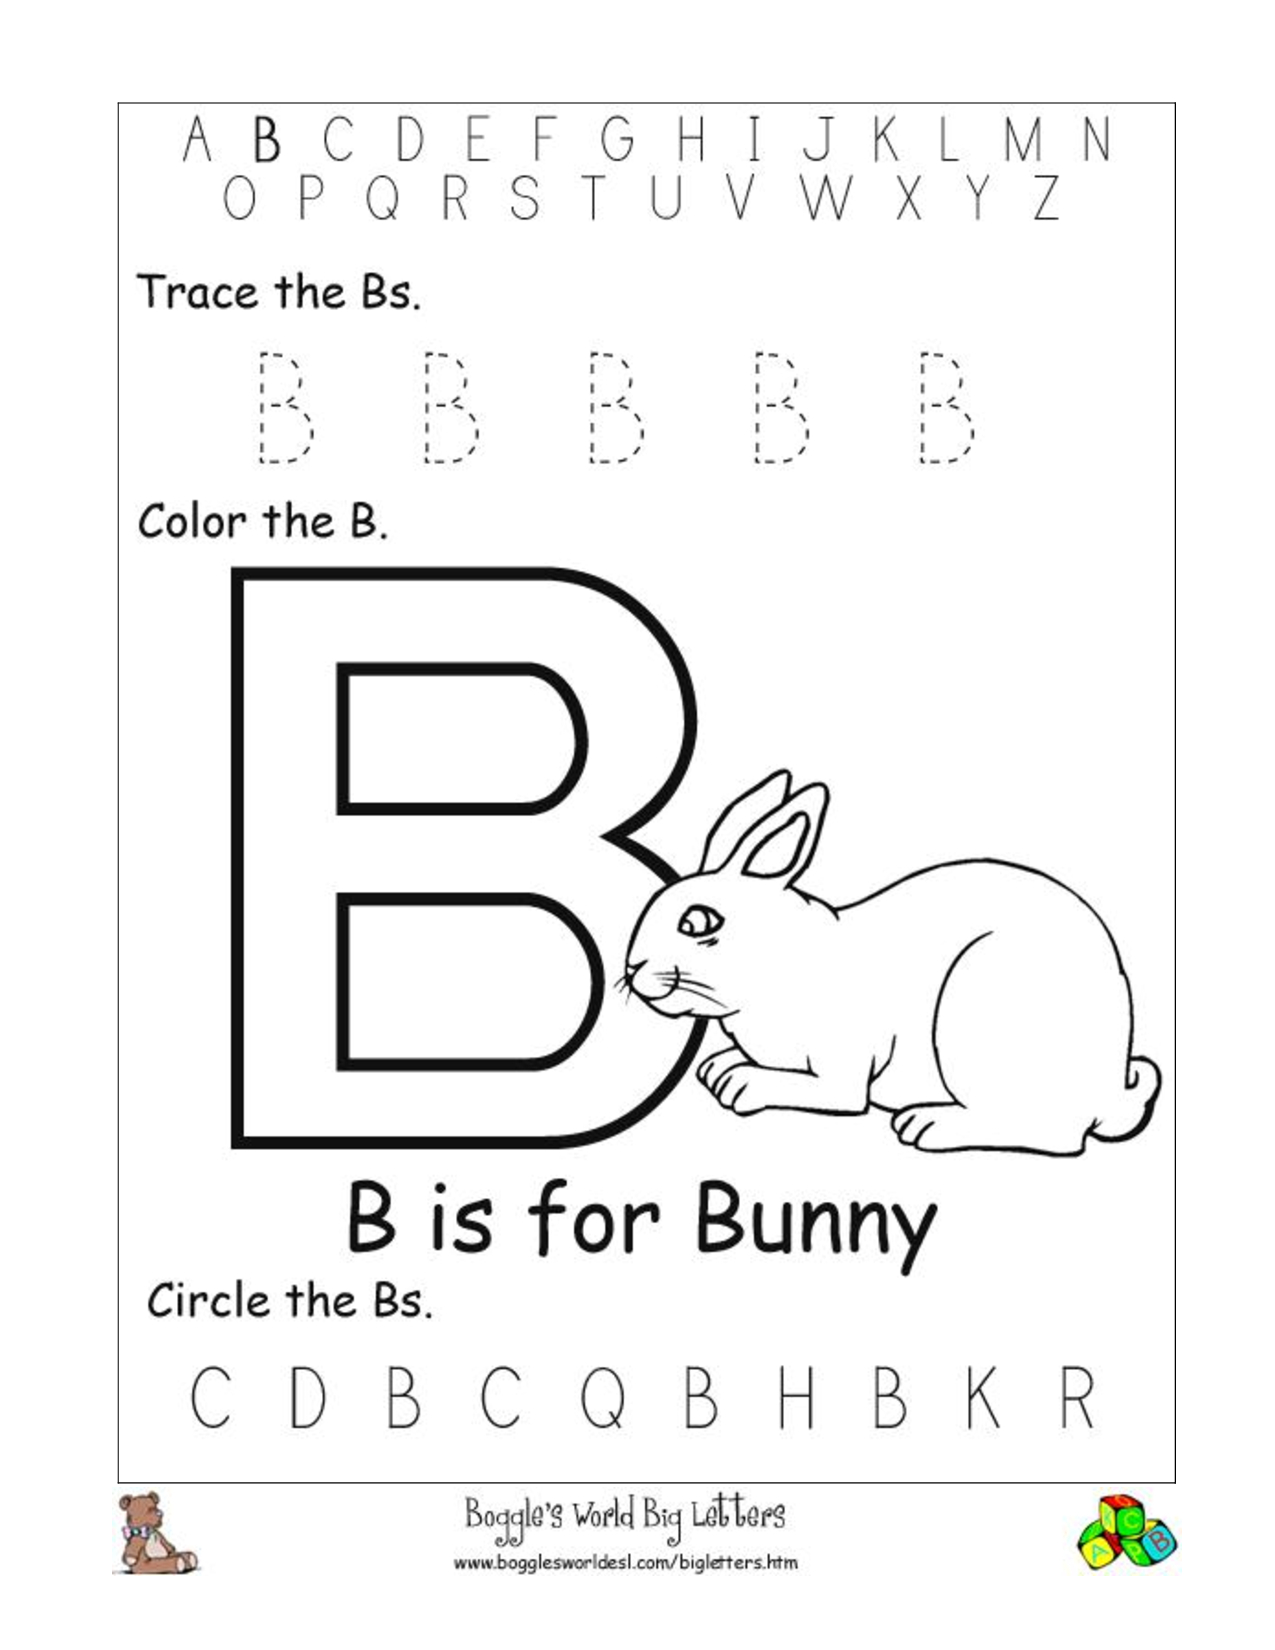 Letter B Worksheets Hd Wallpapers Download Free Letter B inside Letter B Worksheets For Preschool Free